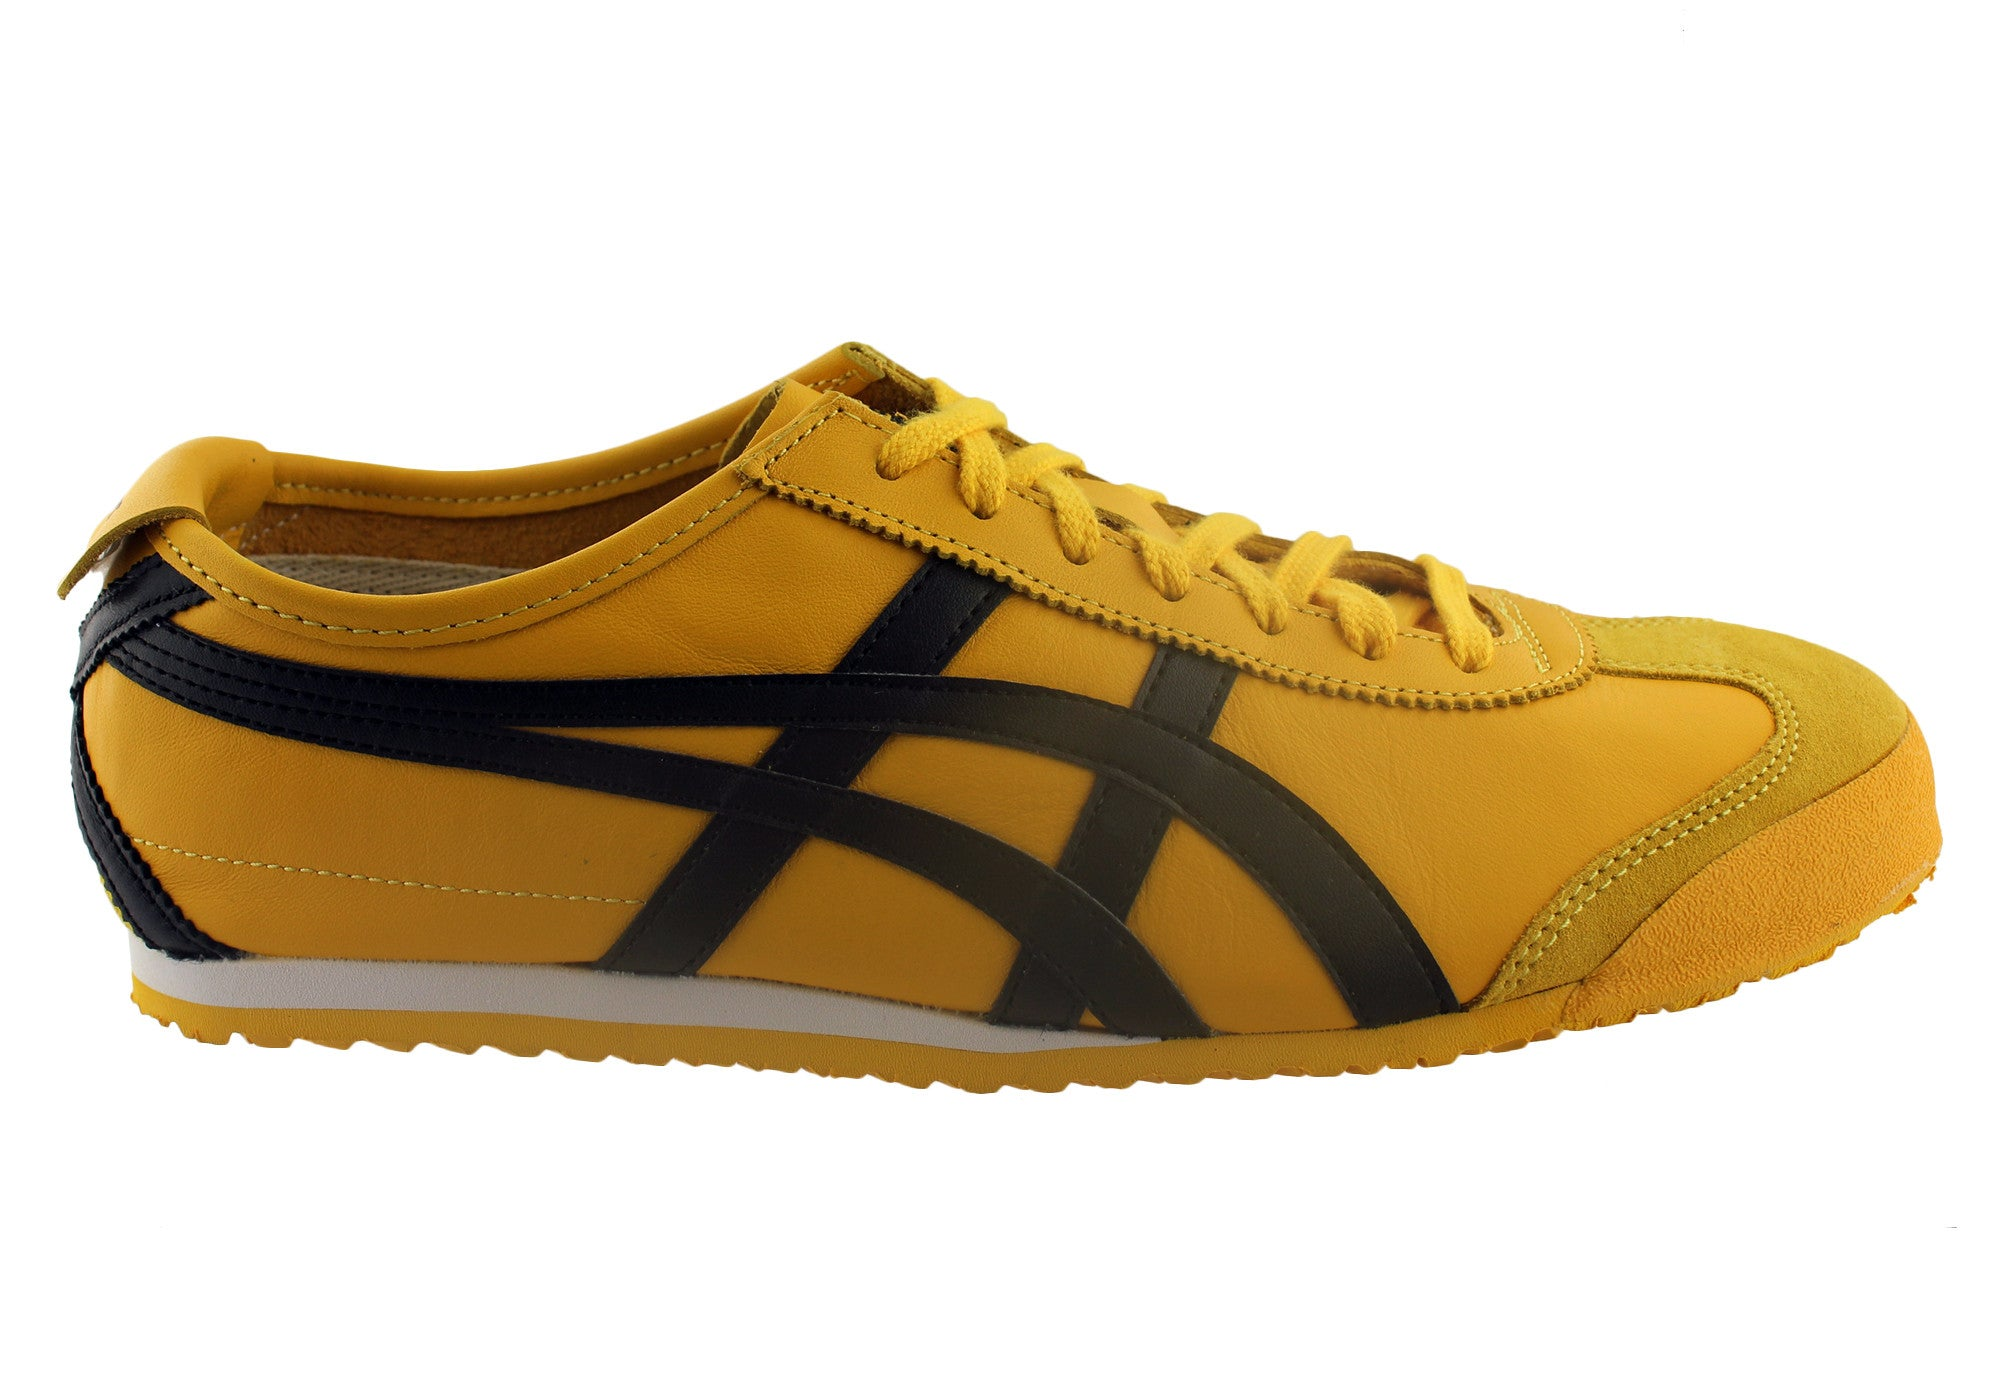 NEW-ASICS-ONITSUKA-TIGER-MEXICO-66-MENS-CASUAL-SHOES